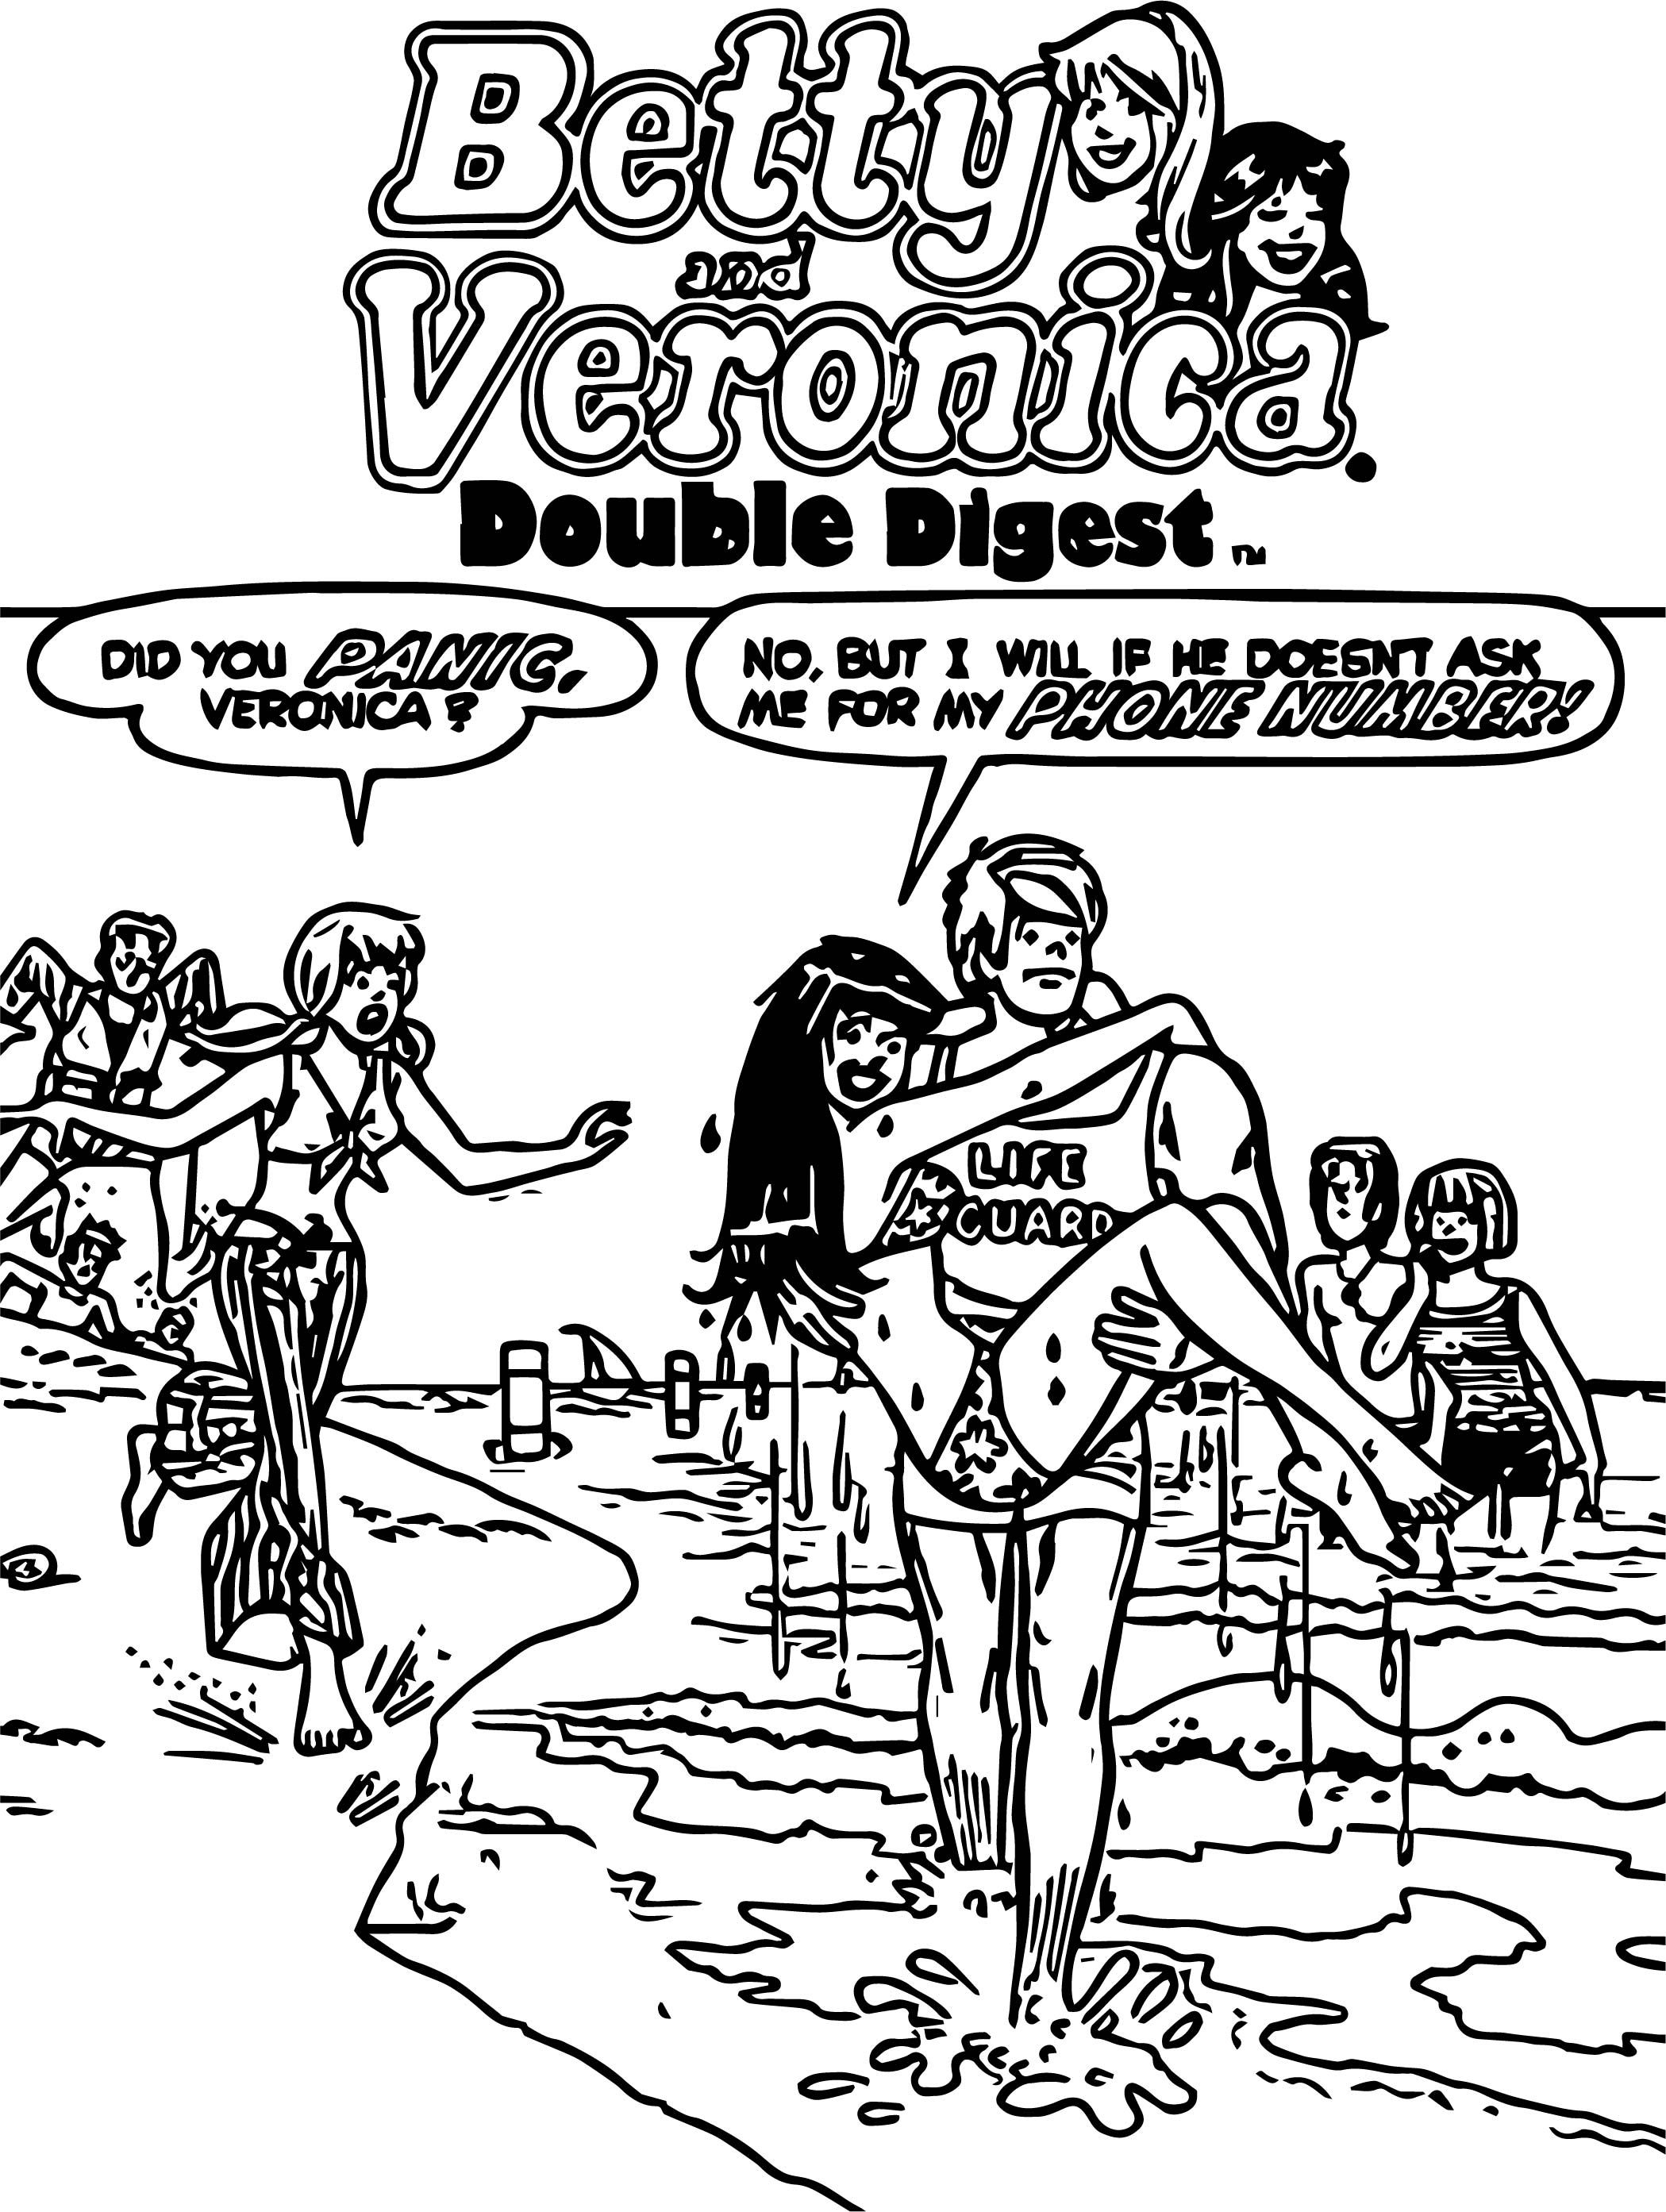 Cool Betty Veronica Coloring Page Betty And Veronica Coloring Pages Printable Coloring Book